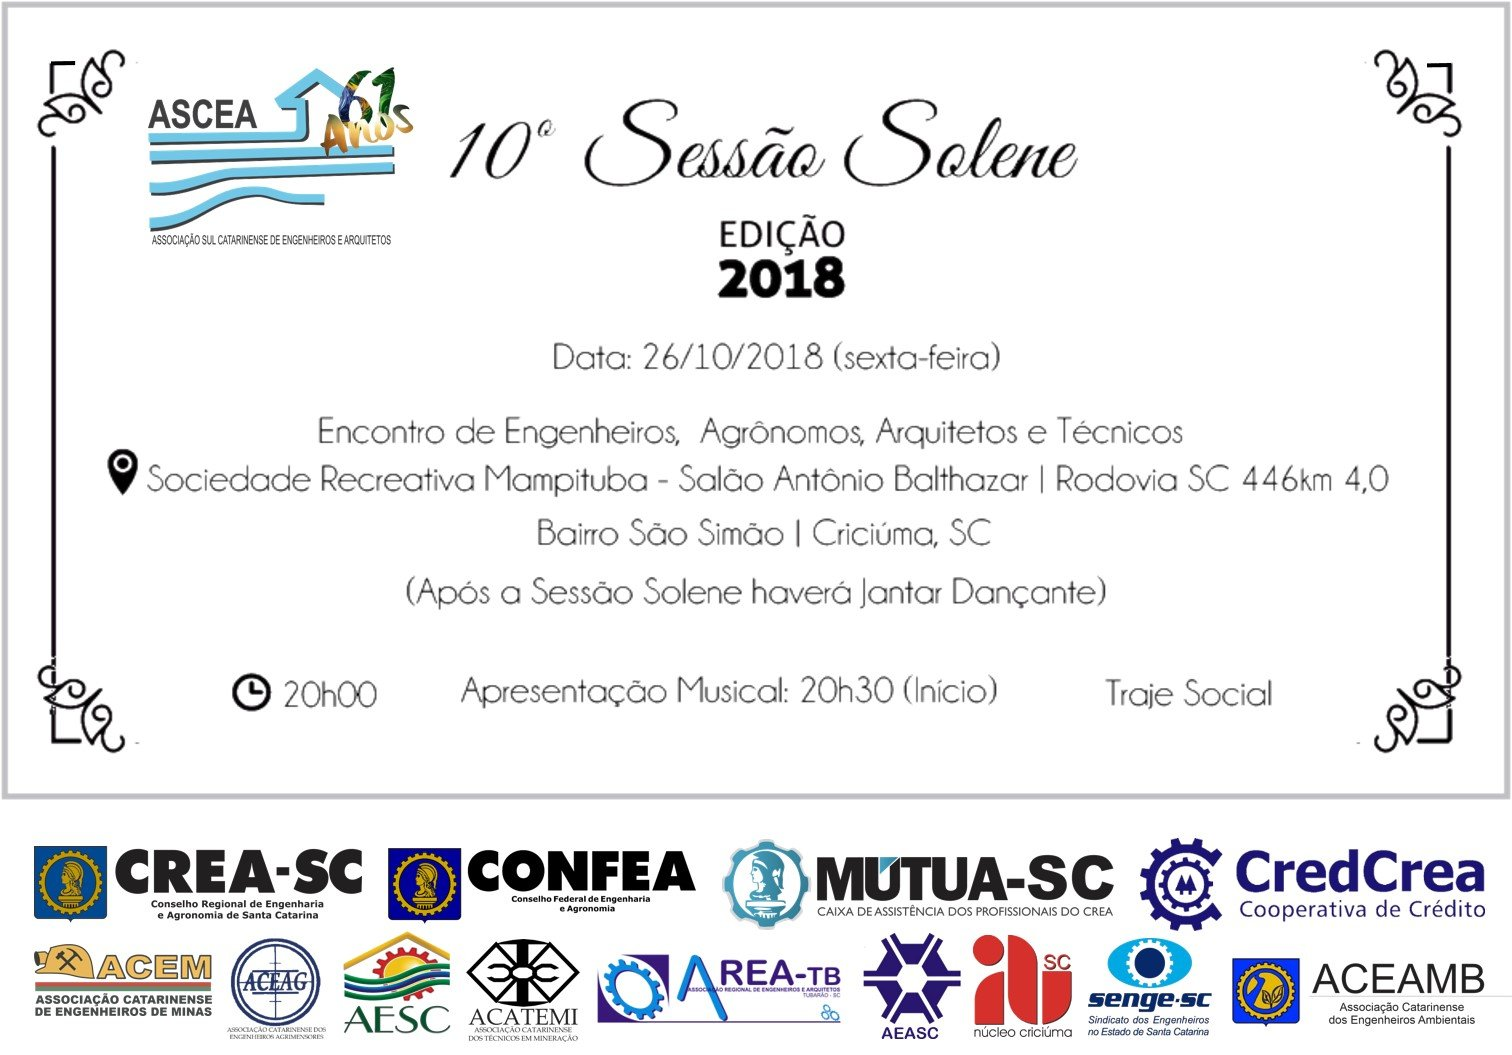 2018 - Sessão Solene e 10o EAT 1512x1055_